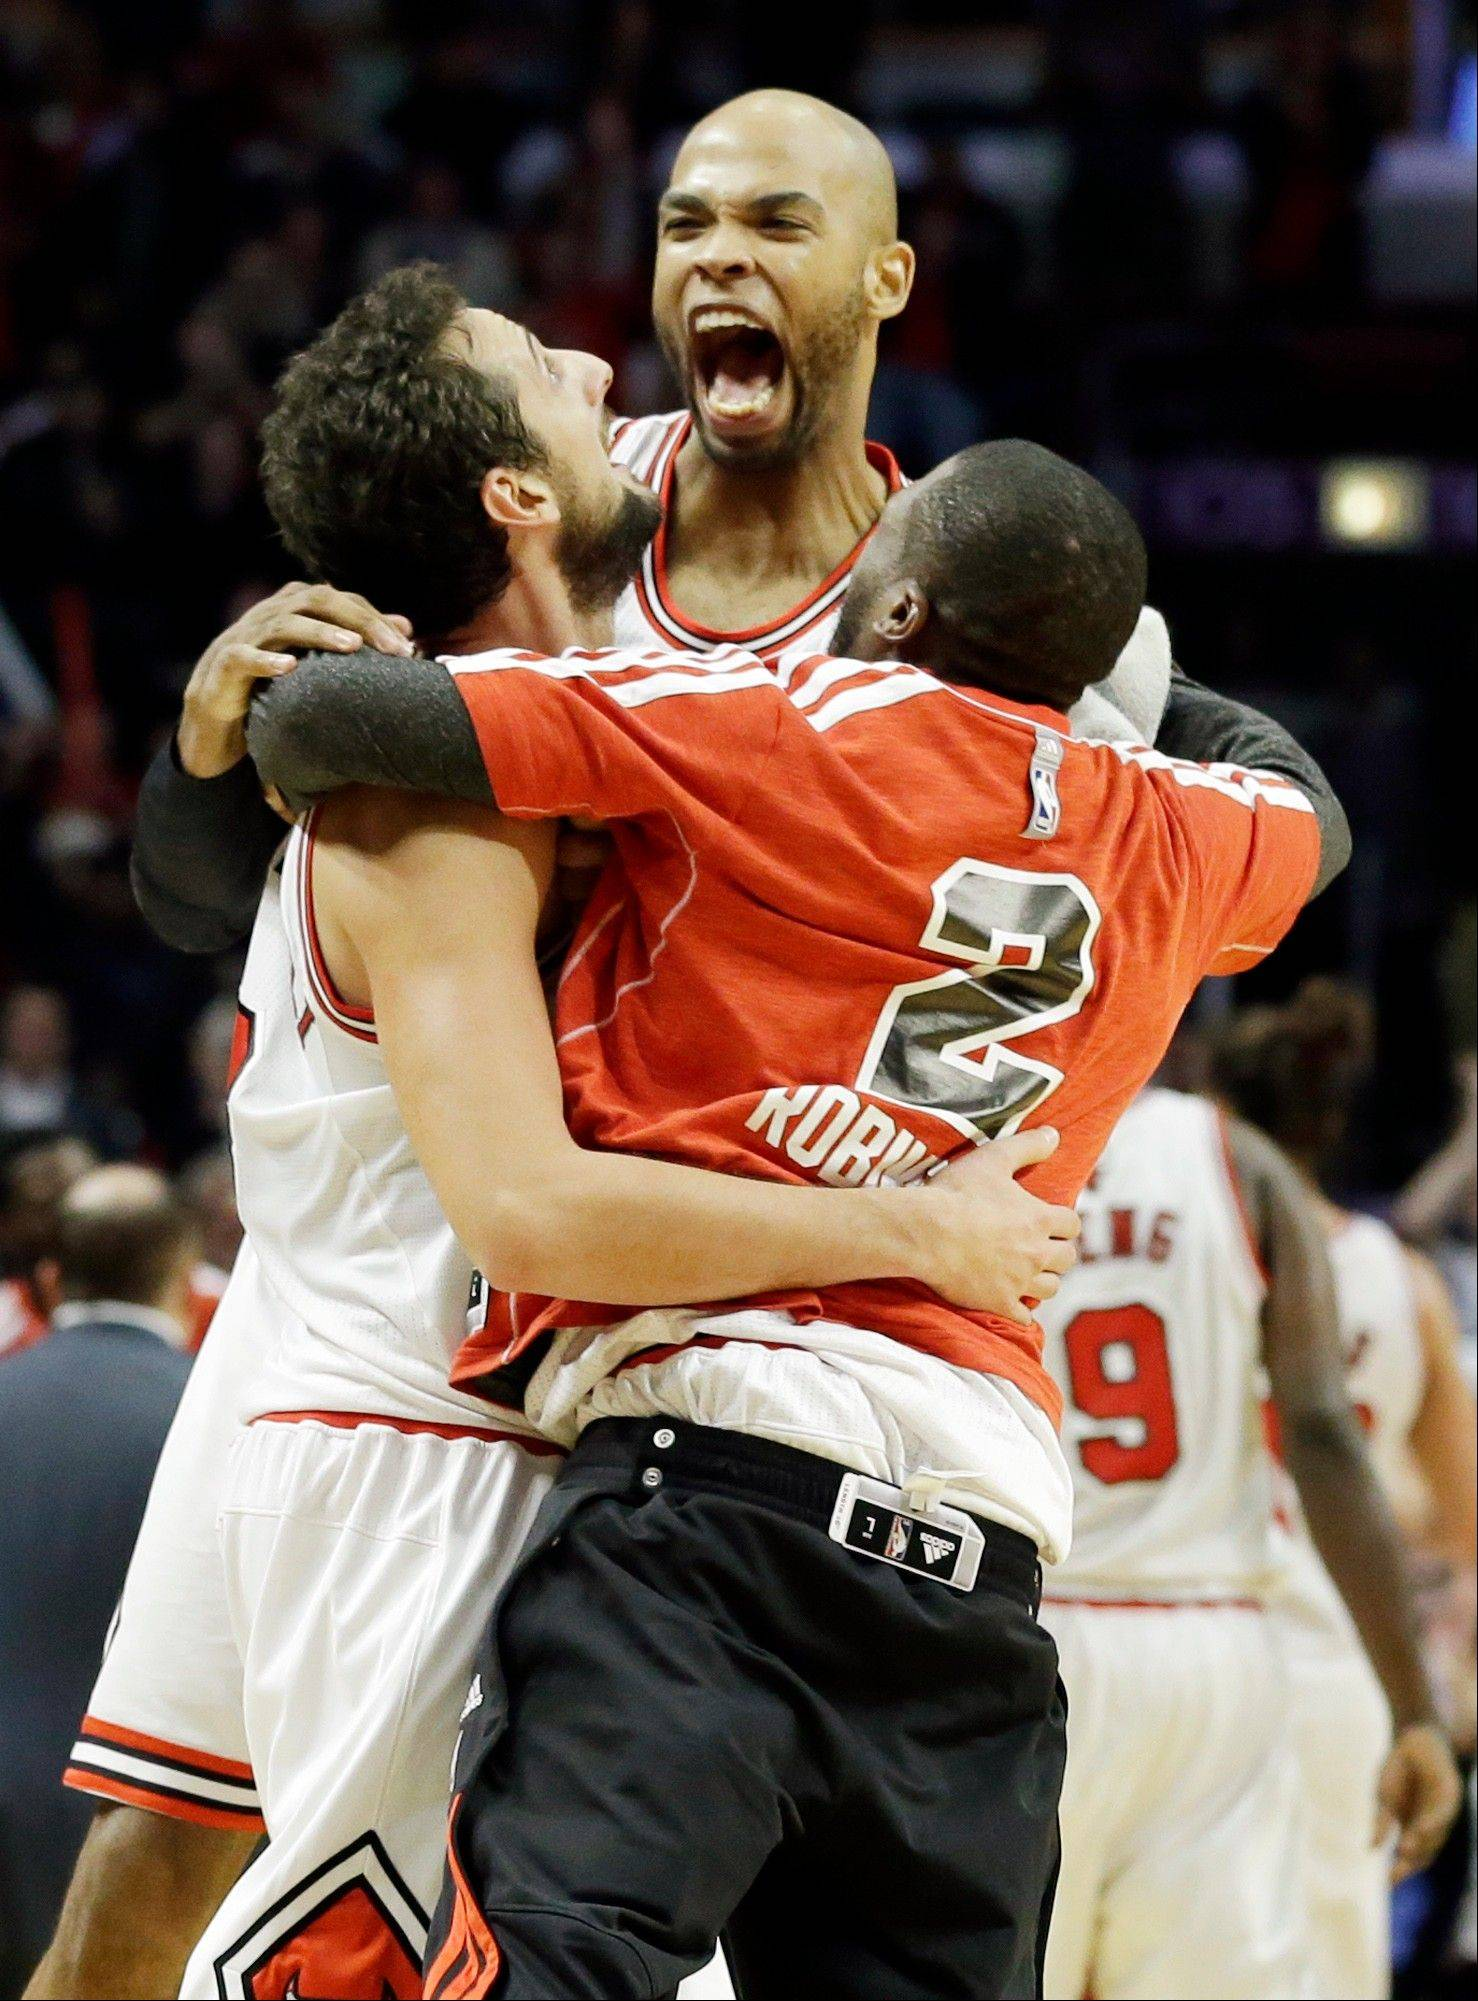 Marco Belinelli, left, celebrates with Taj Gibson, center, and Nate Robinson after scoring a basket during the second half of an NBA basketball game against the Brooklyn Nets in Chicago on Saturday, Dec. 15, 2012. The Bulls won 83-82.